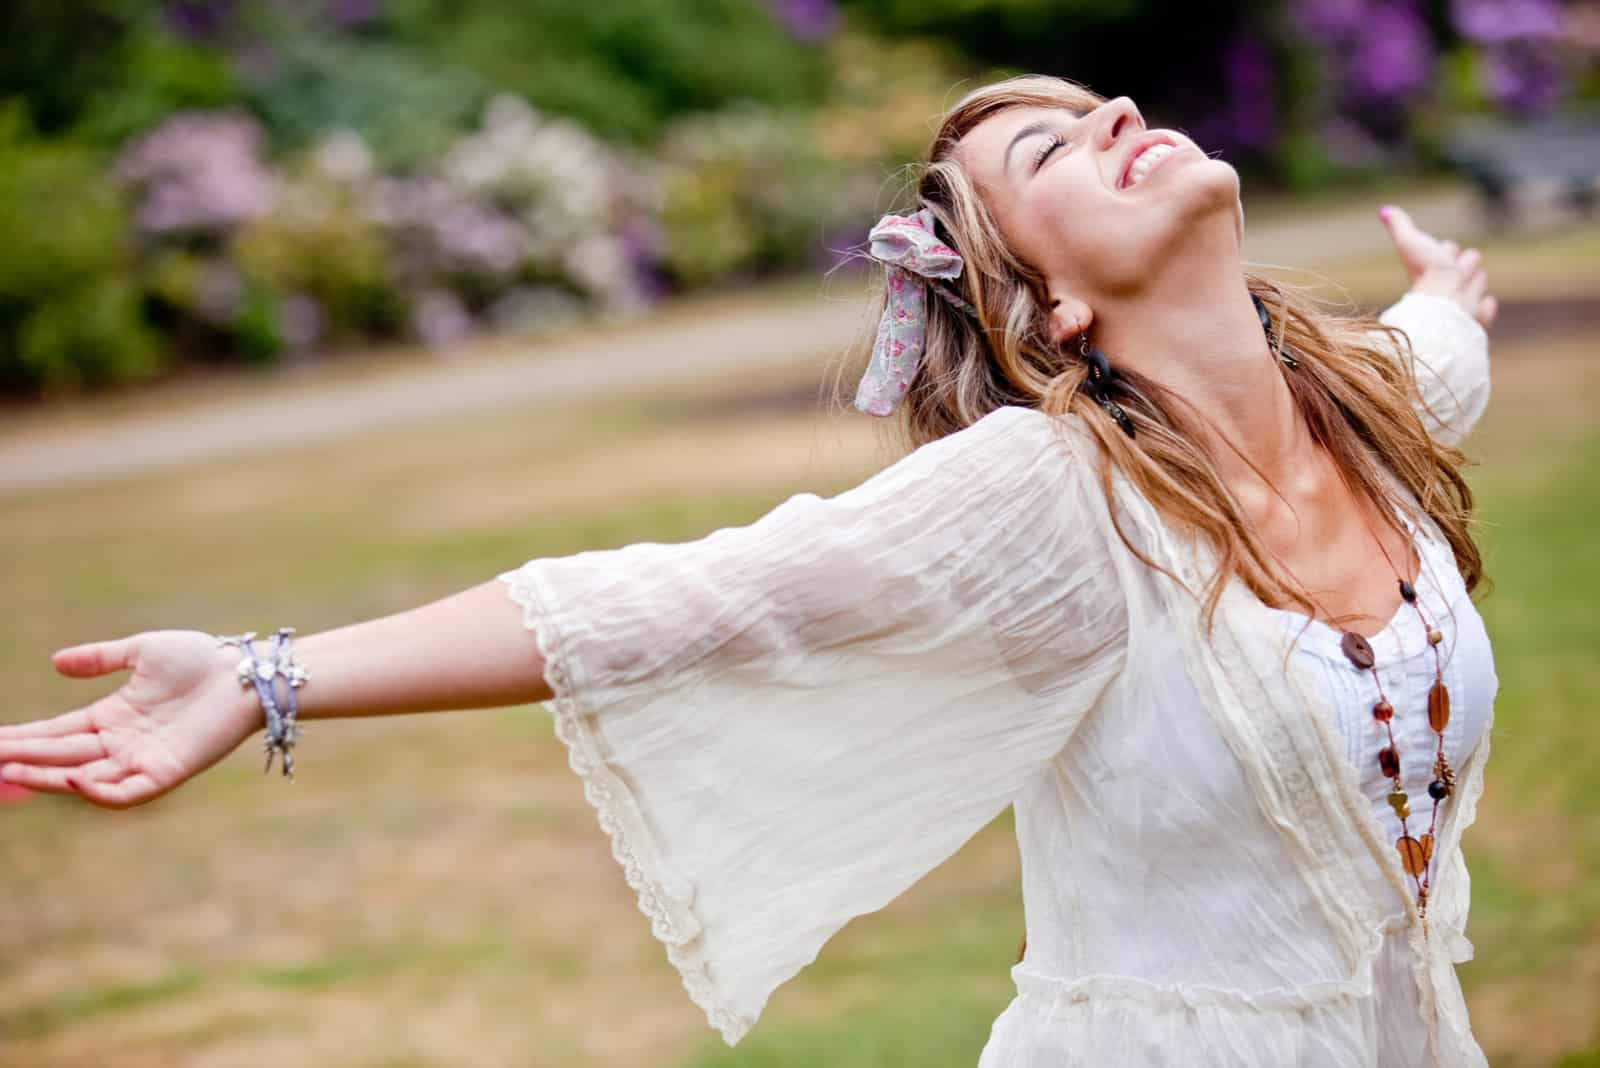 a beautiful woman in a white dress stands with her arms outstretched